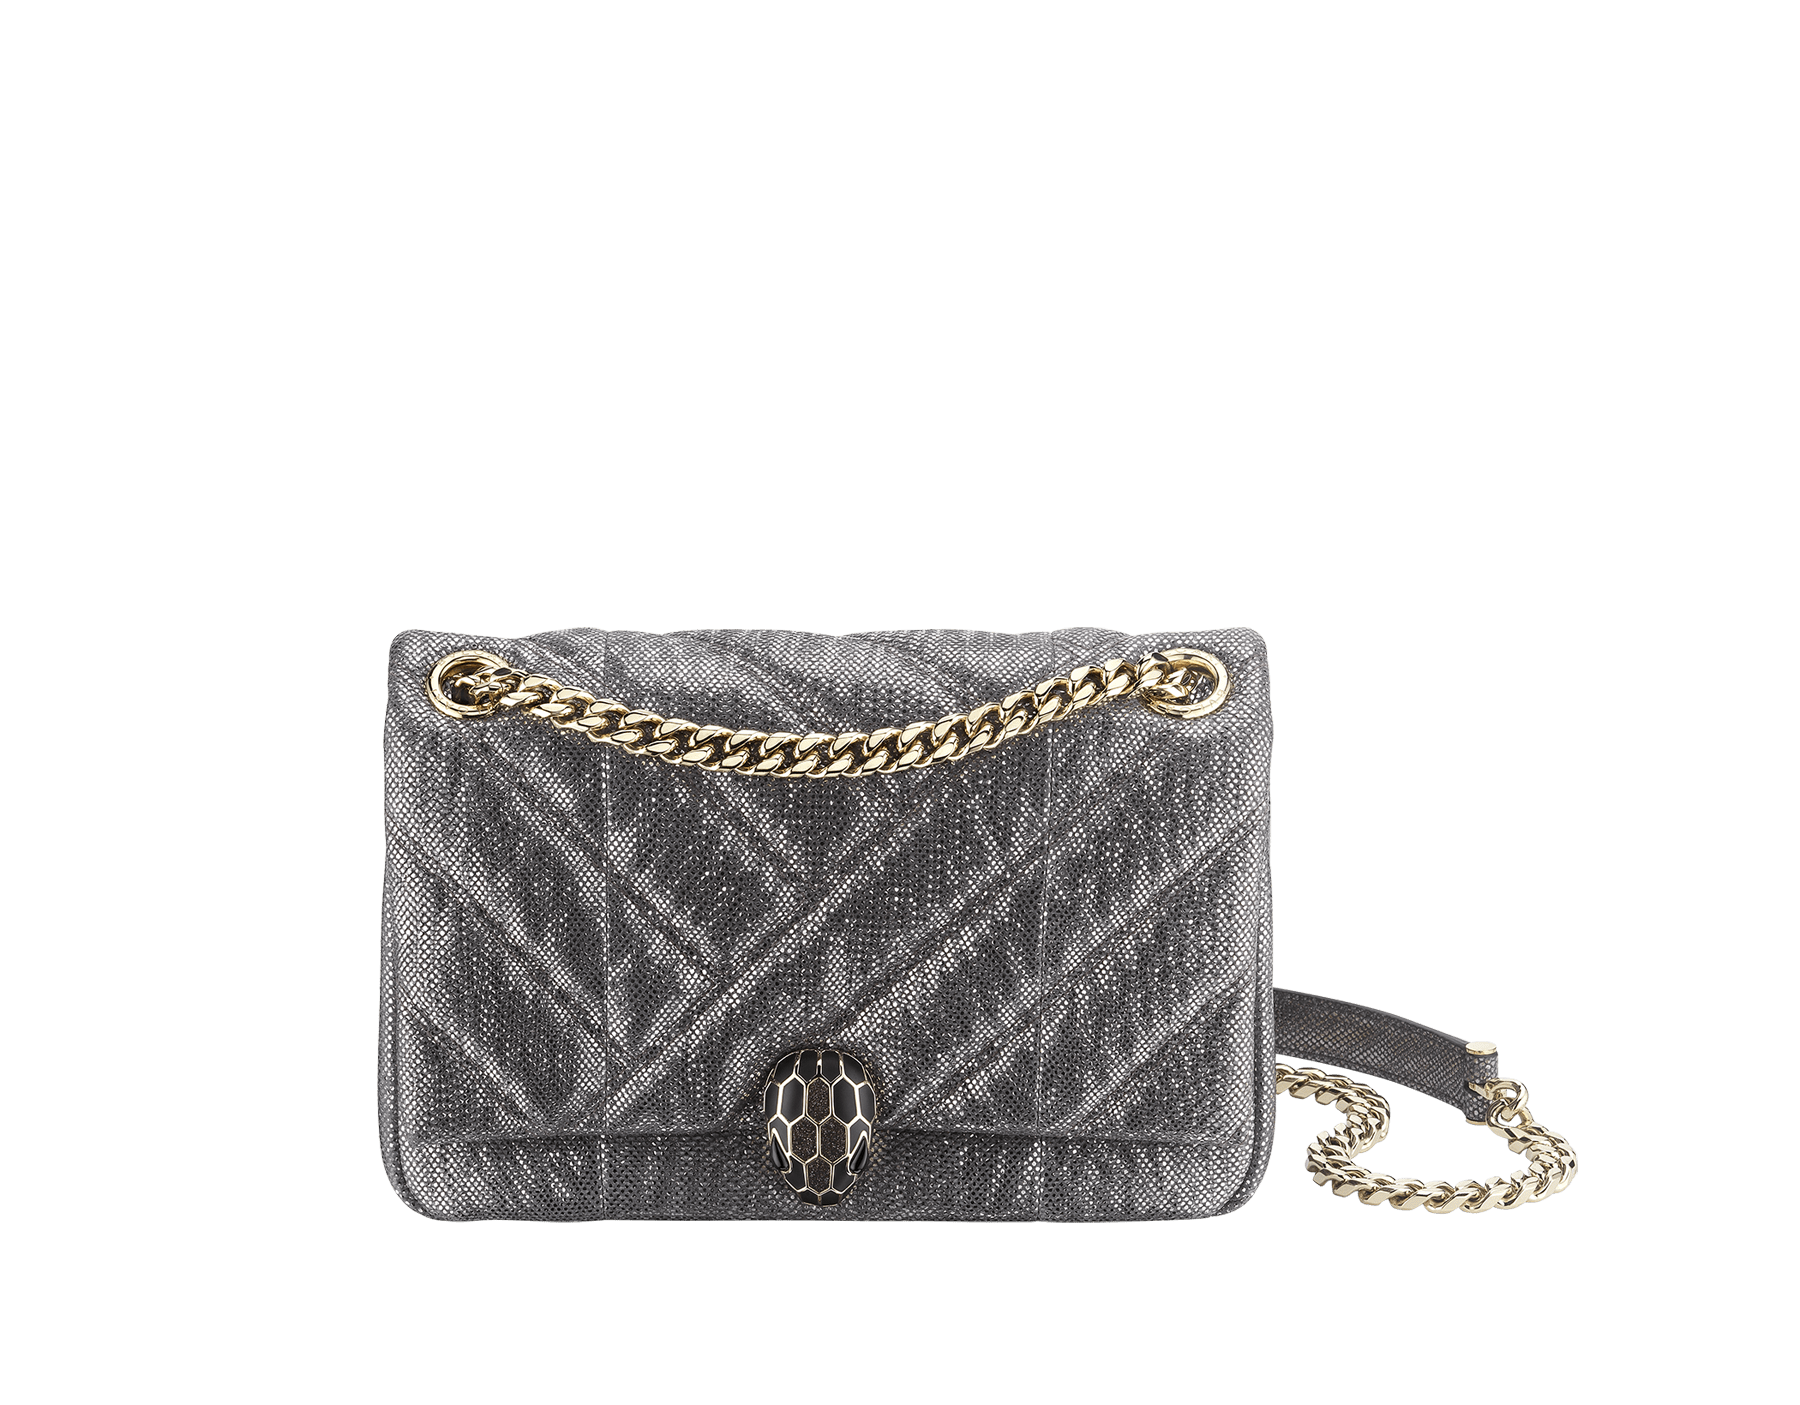 Serpenti Cabochon shoulder bag in soft matelassé charcoal diamond metallic karung skin with graphic motif. Snakehead closure in light gold plated brass decorated with matte black and glitter charcoal diamond enamel, and black onyx eyes. 290237 image 1